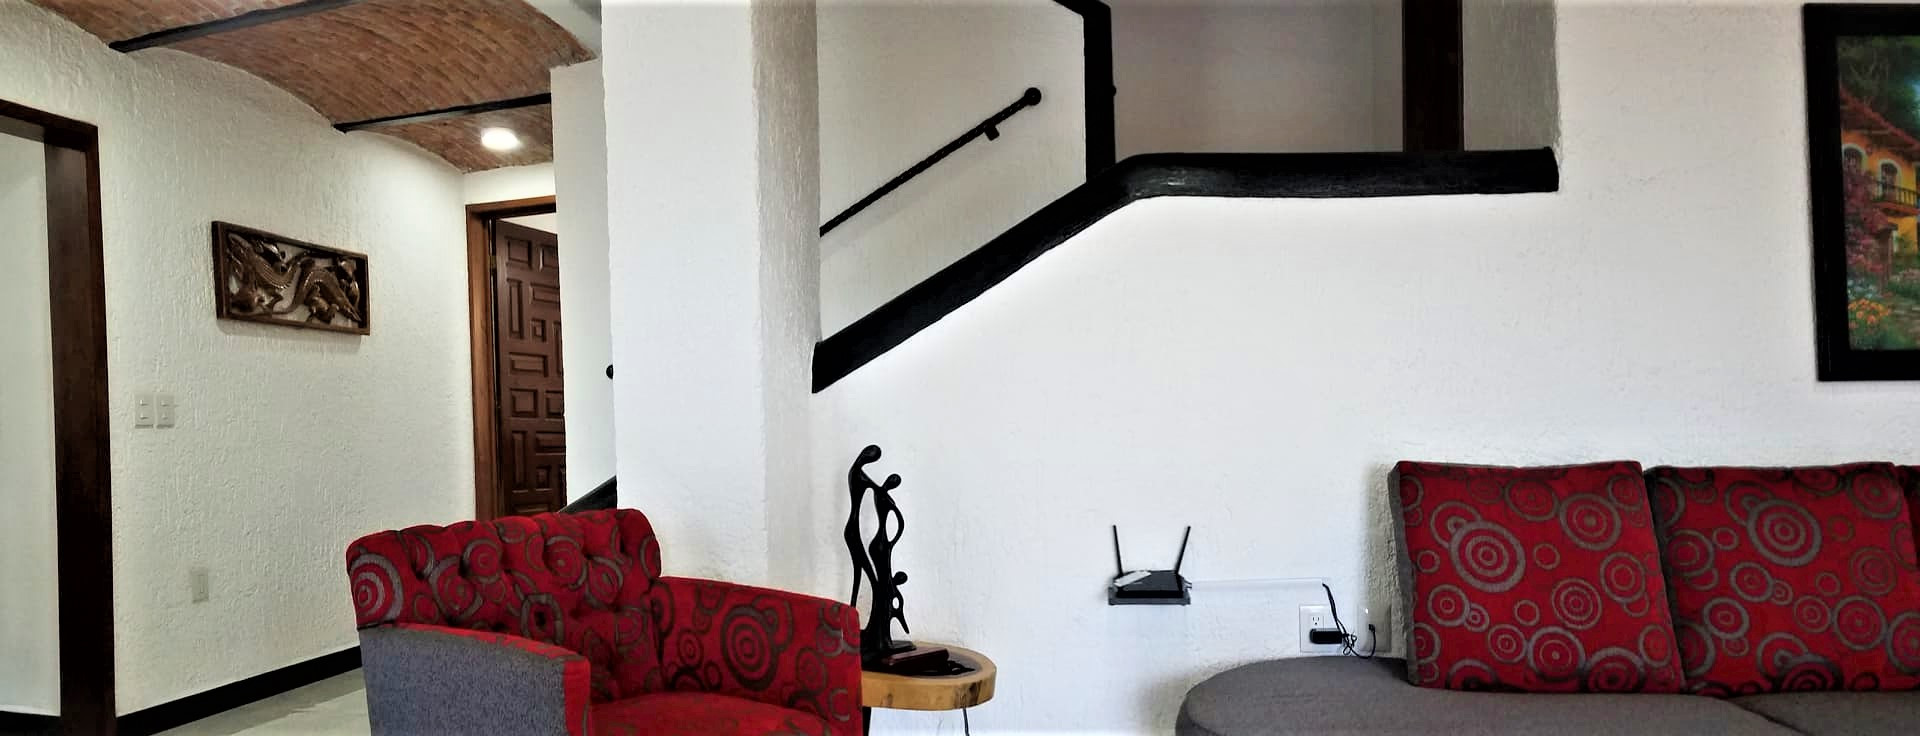 Living room with stairs view.jpg